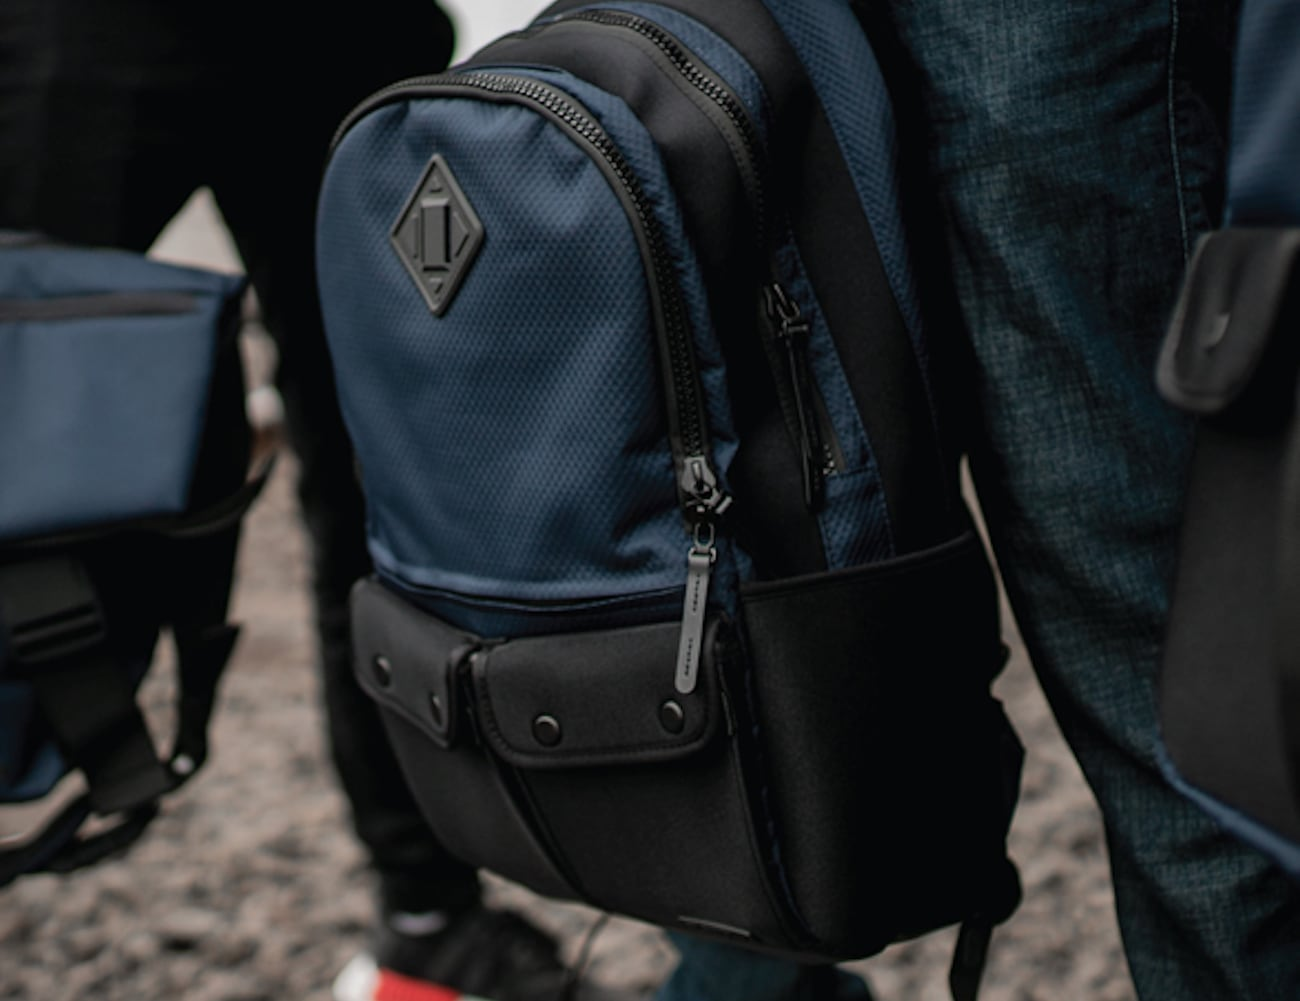 Lexdray Tokyo Pack Everyday Carry Backpack